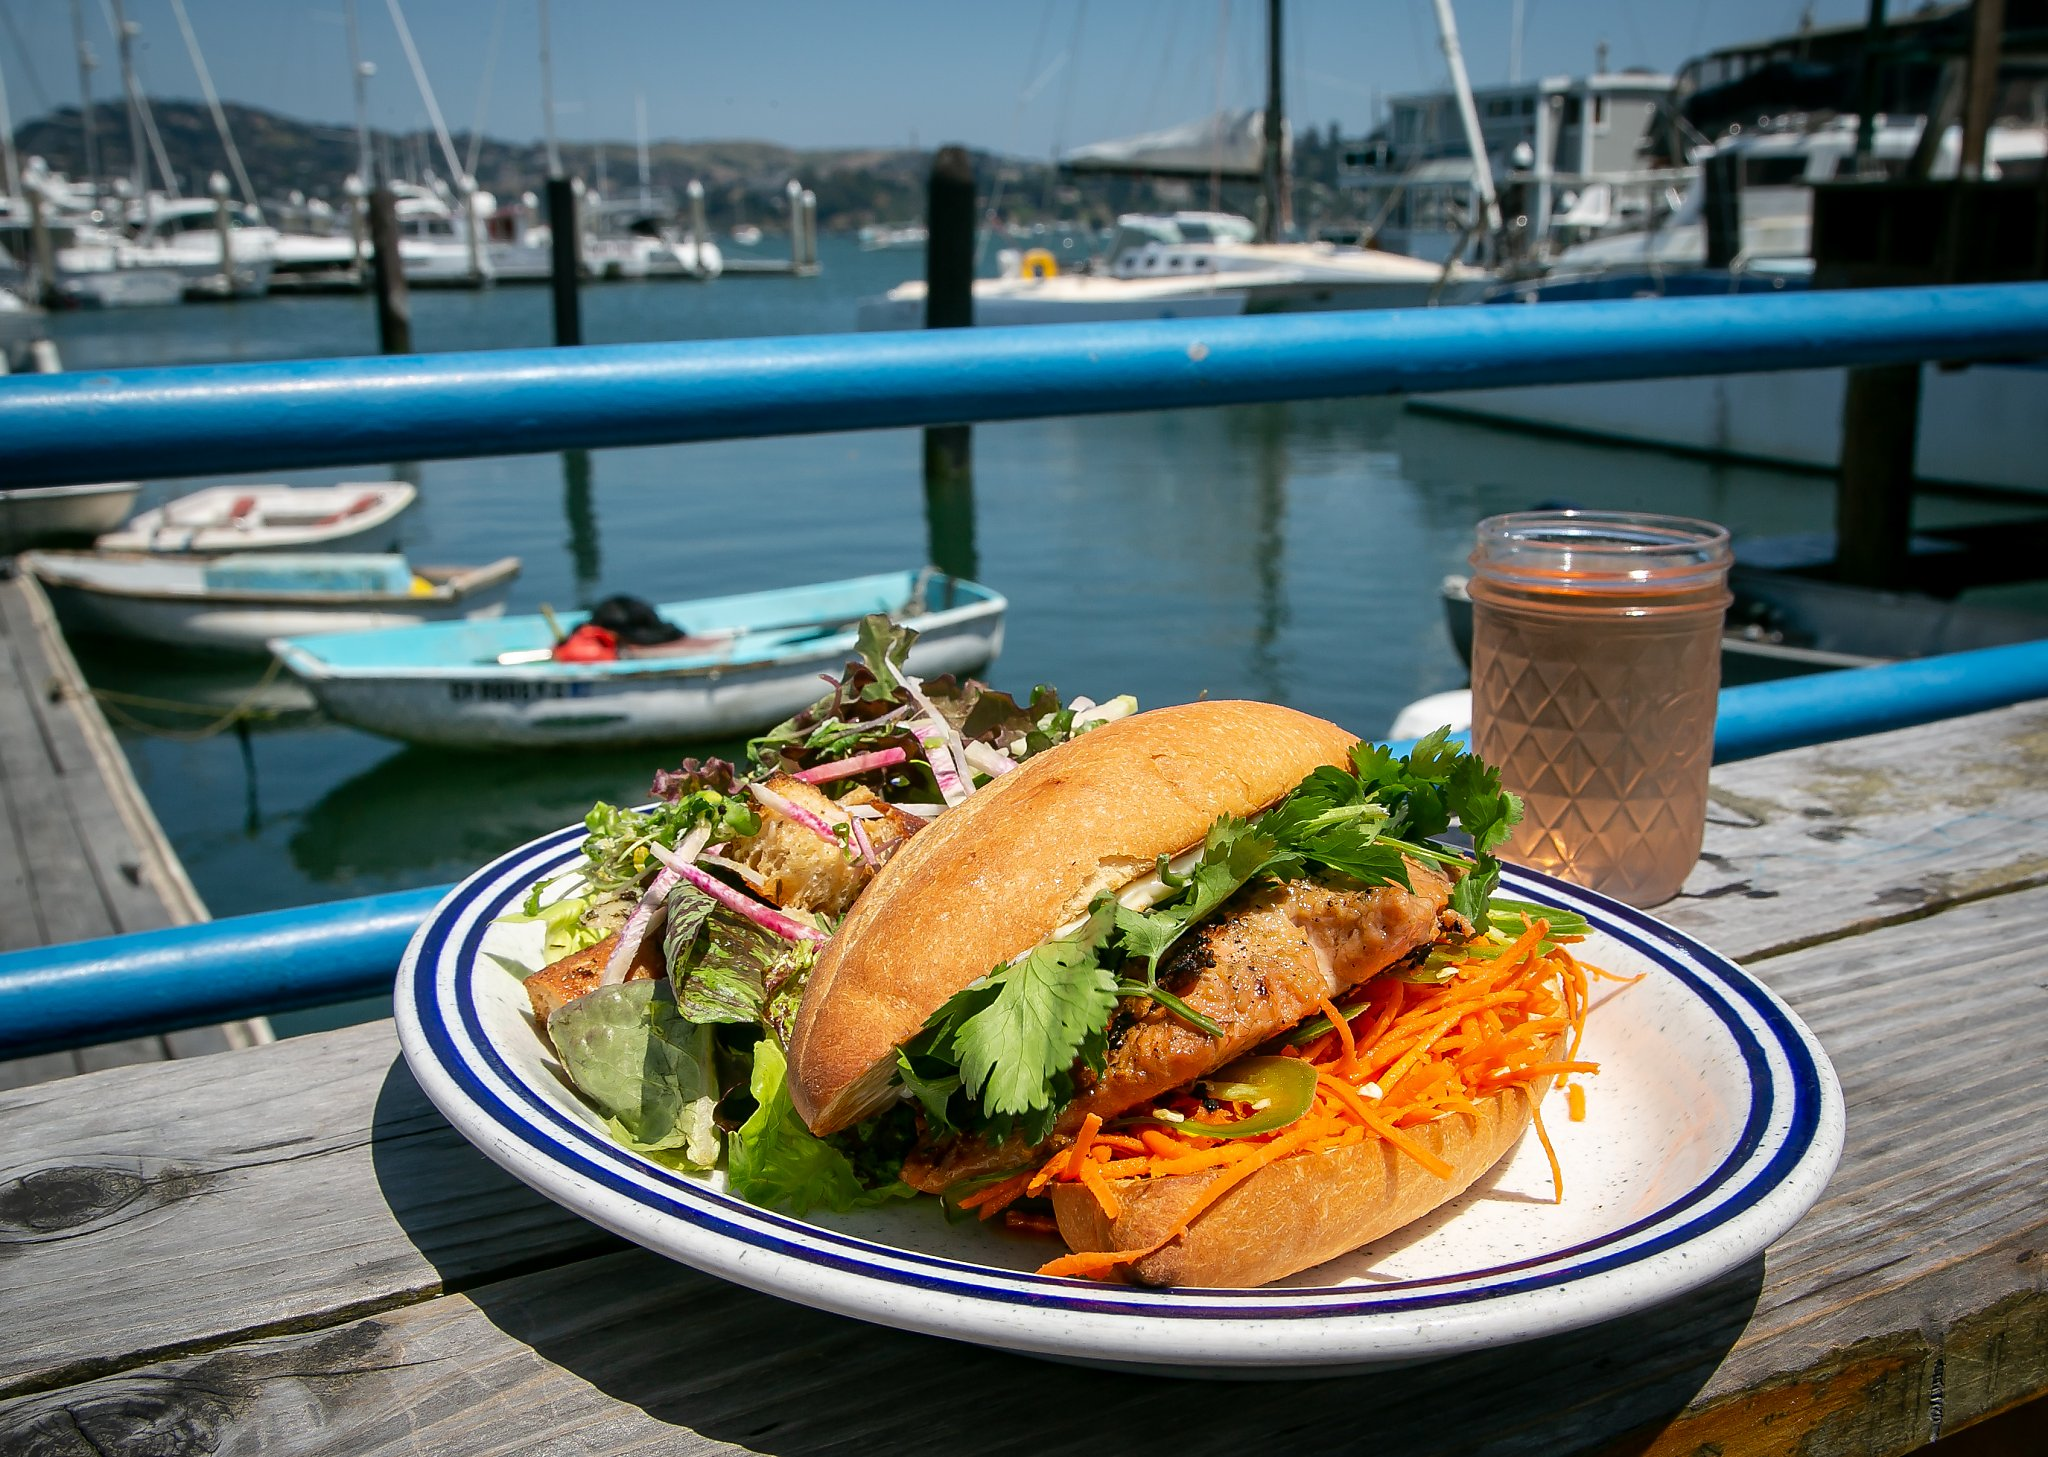 10 scenic waterfront restaurants open in the Bay Area right now